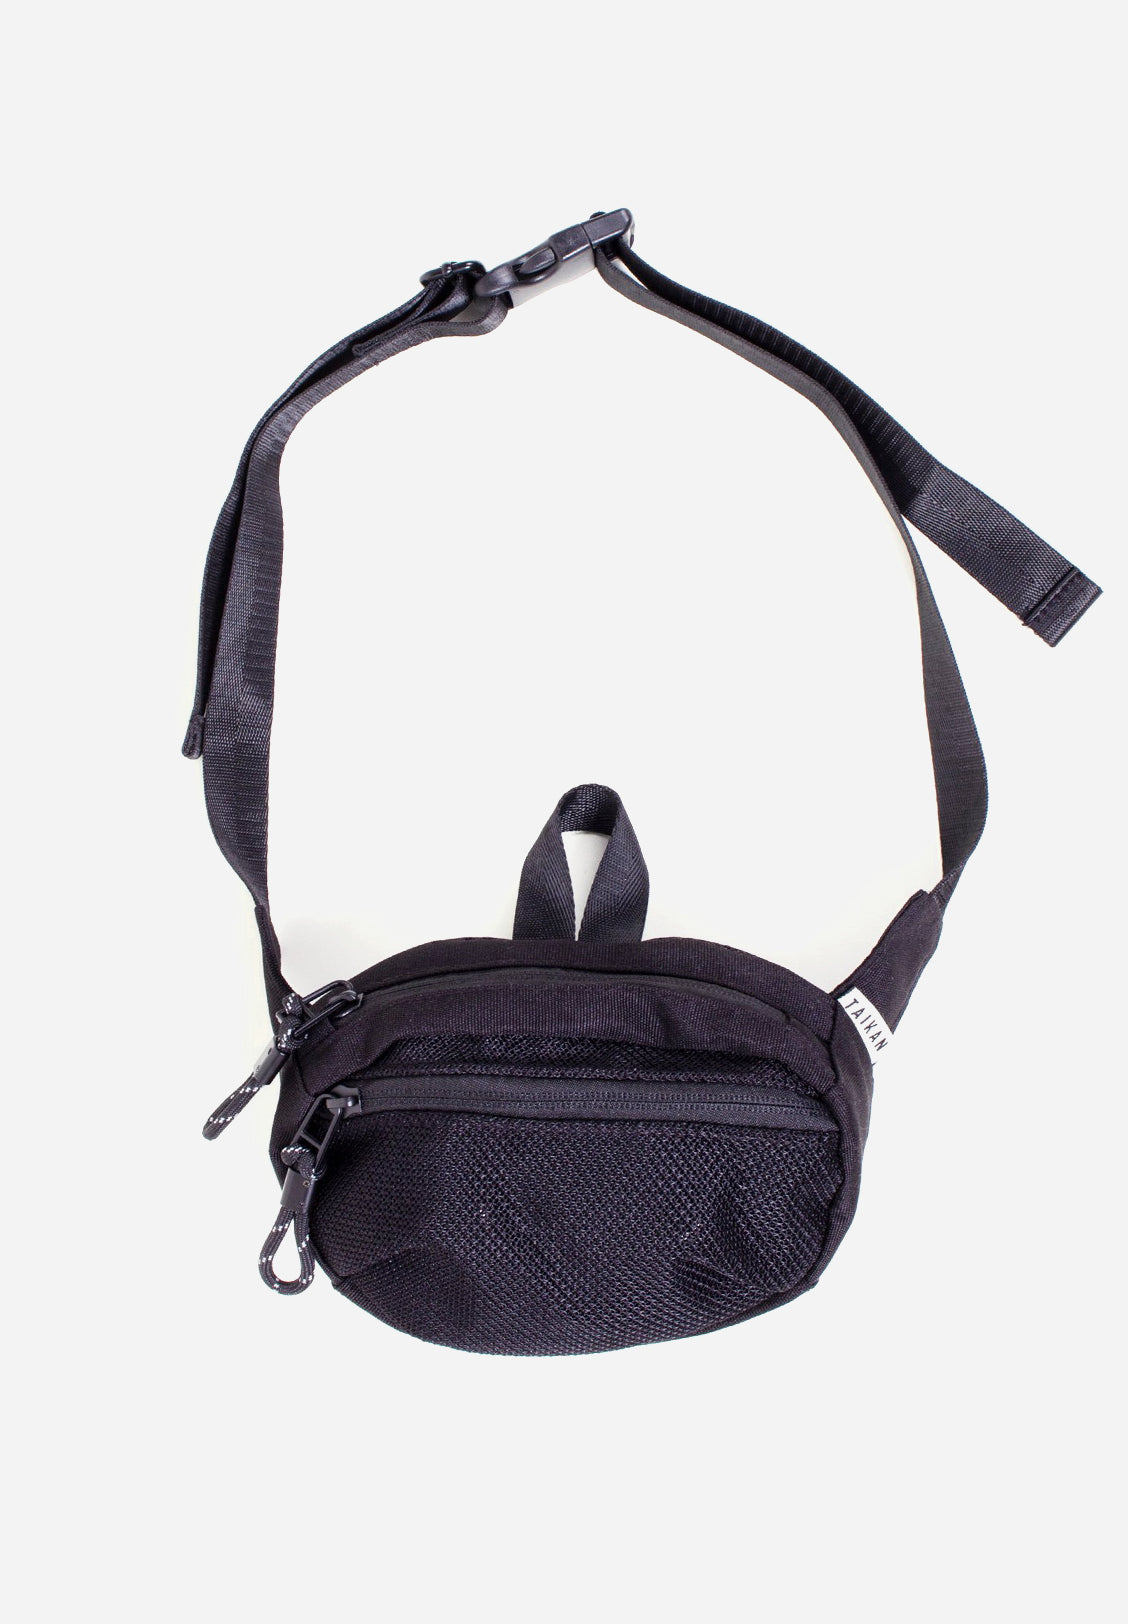 TAIKAN - STINGER BAG, BLACK